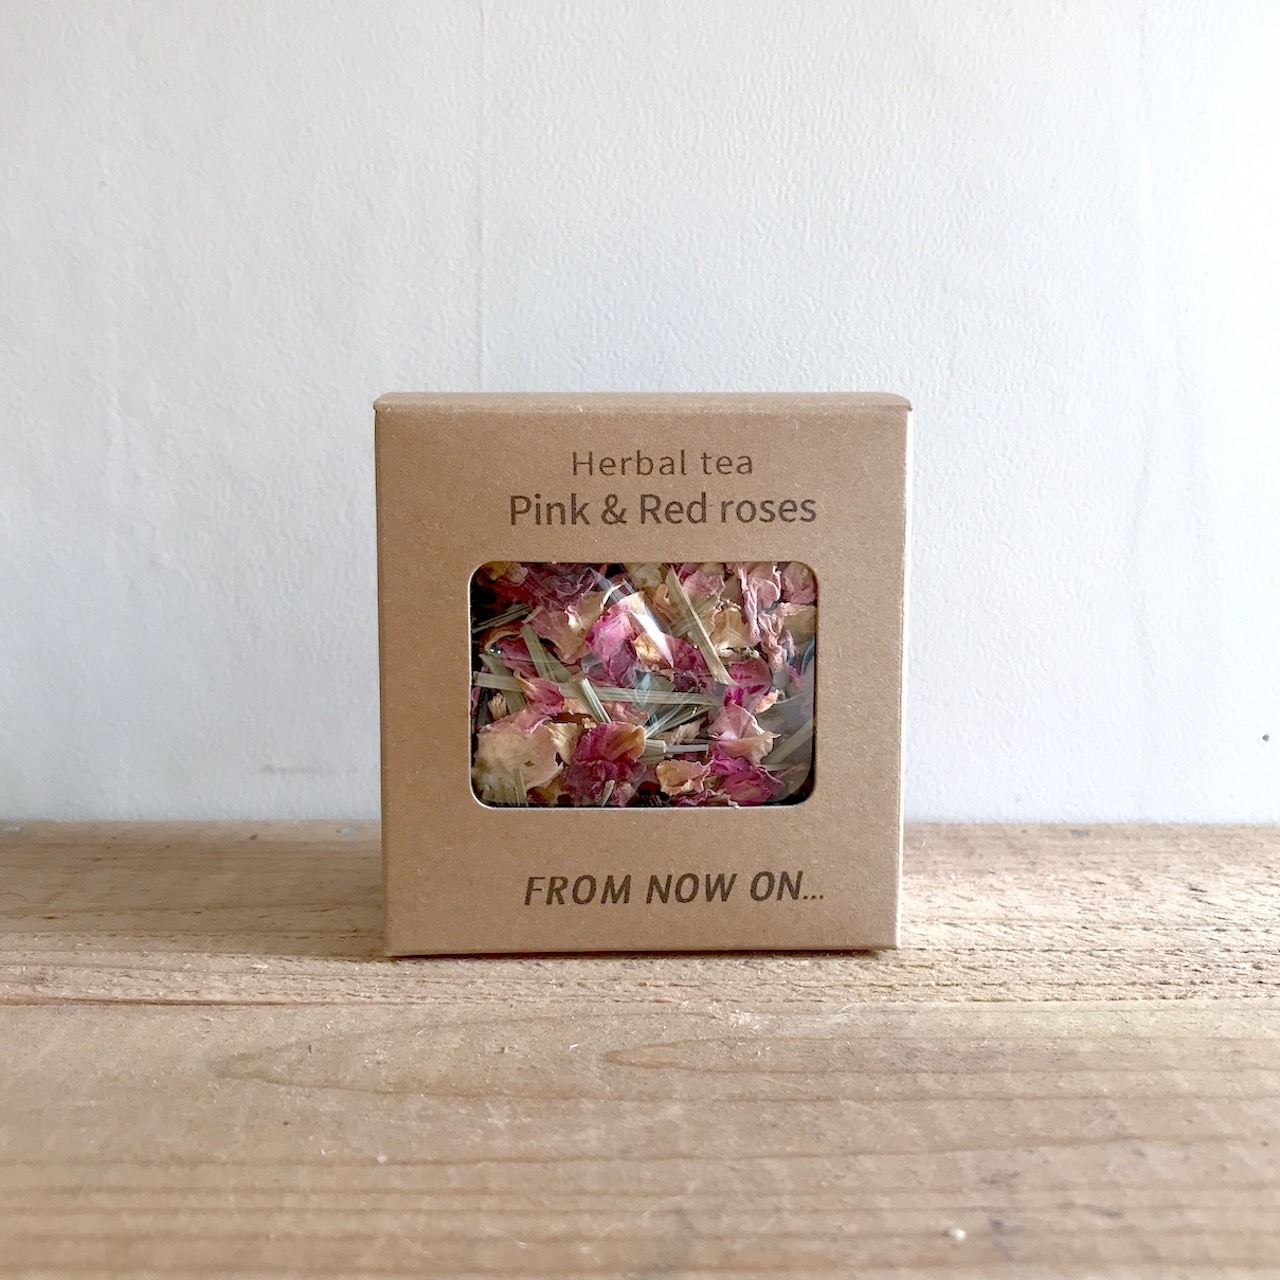 """"""" FNO Pink & Red Roases herbal tea / ピンク&レッドローズ ハーブティー カートンS 10g """""""